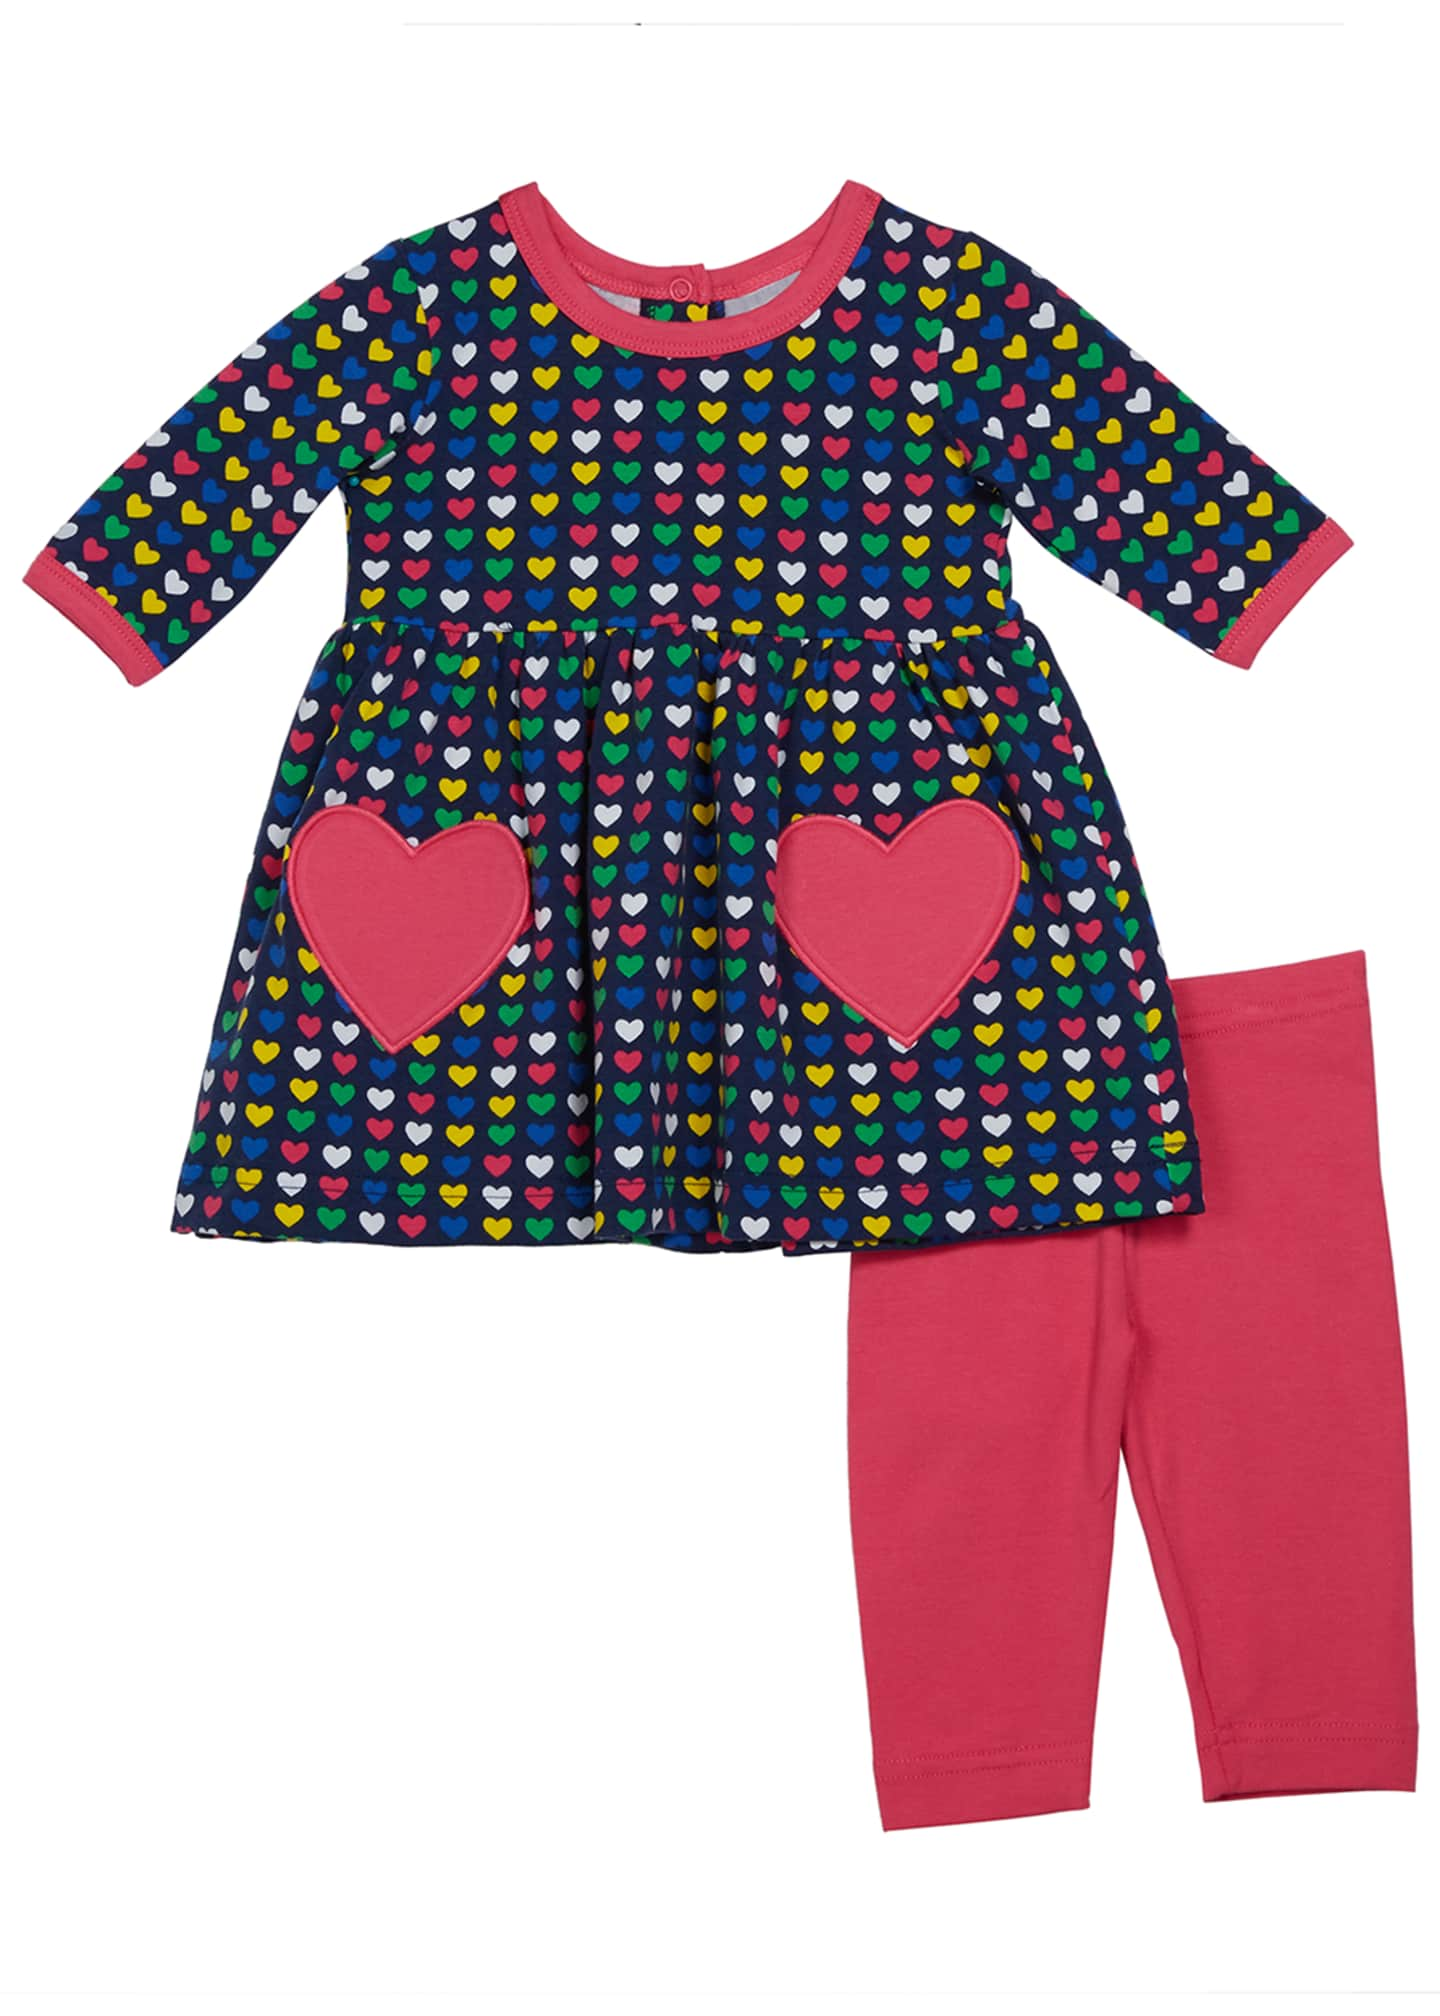 Florence Eiseman Girl's Multicolored Heart Print Dress w/